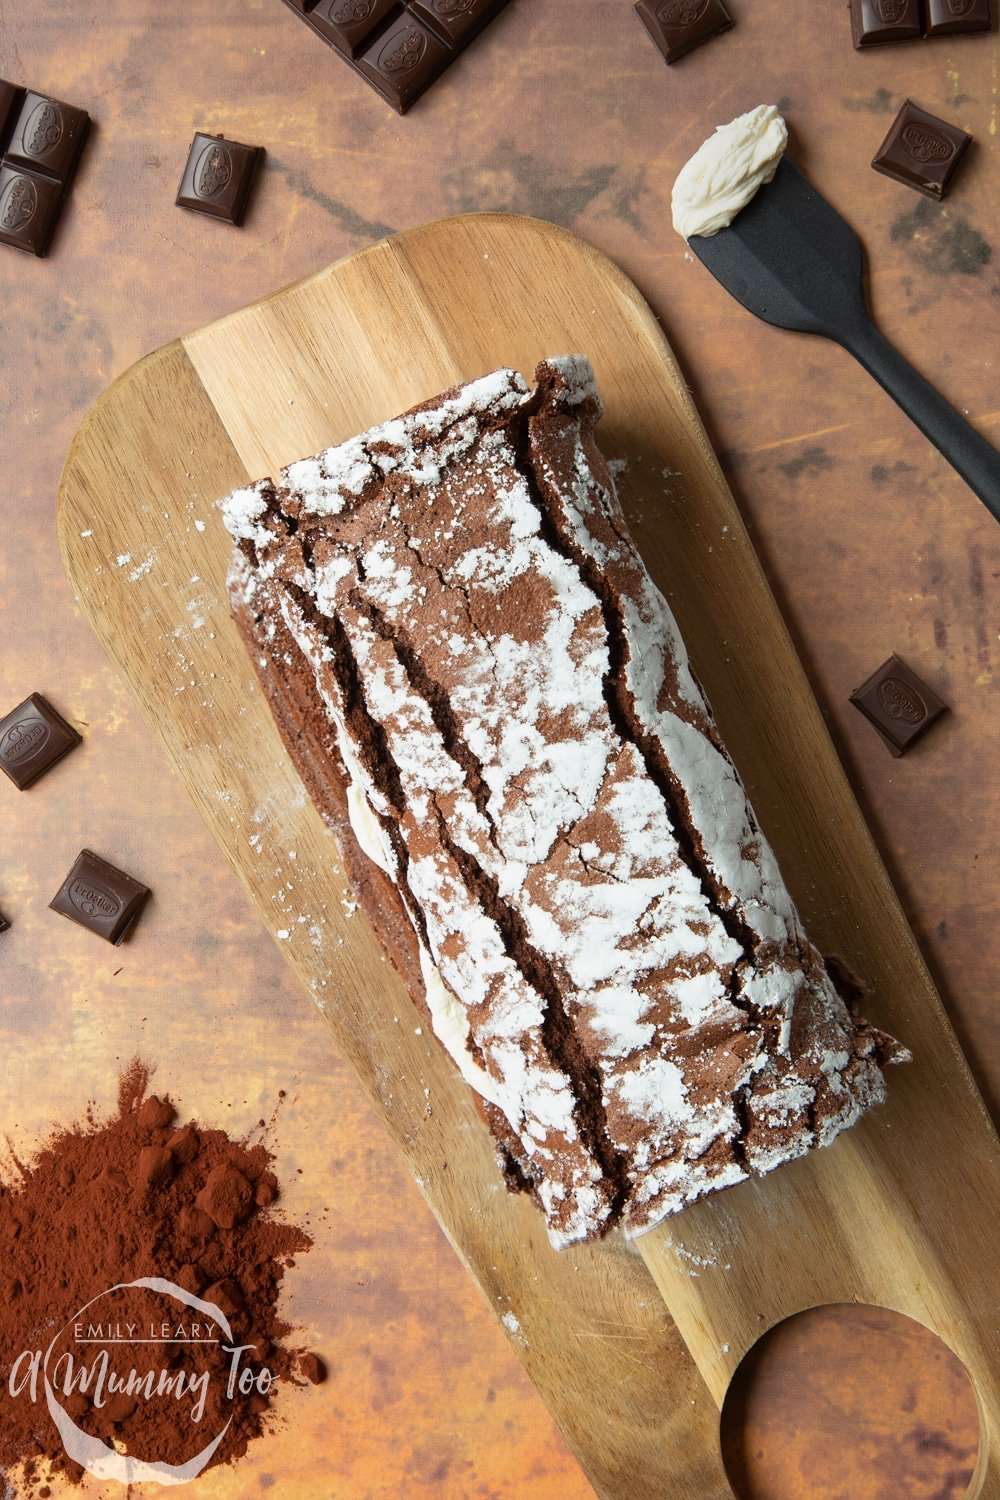 A fully rolled chocolate roulade arranged on a board.